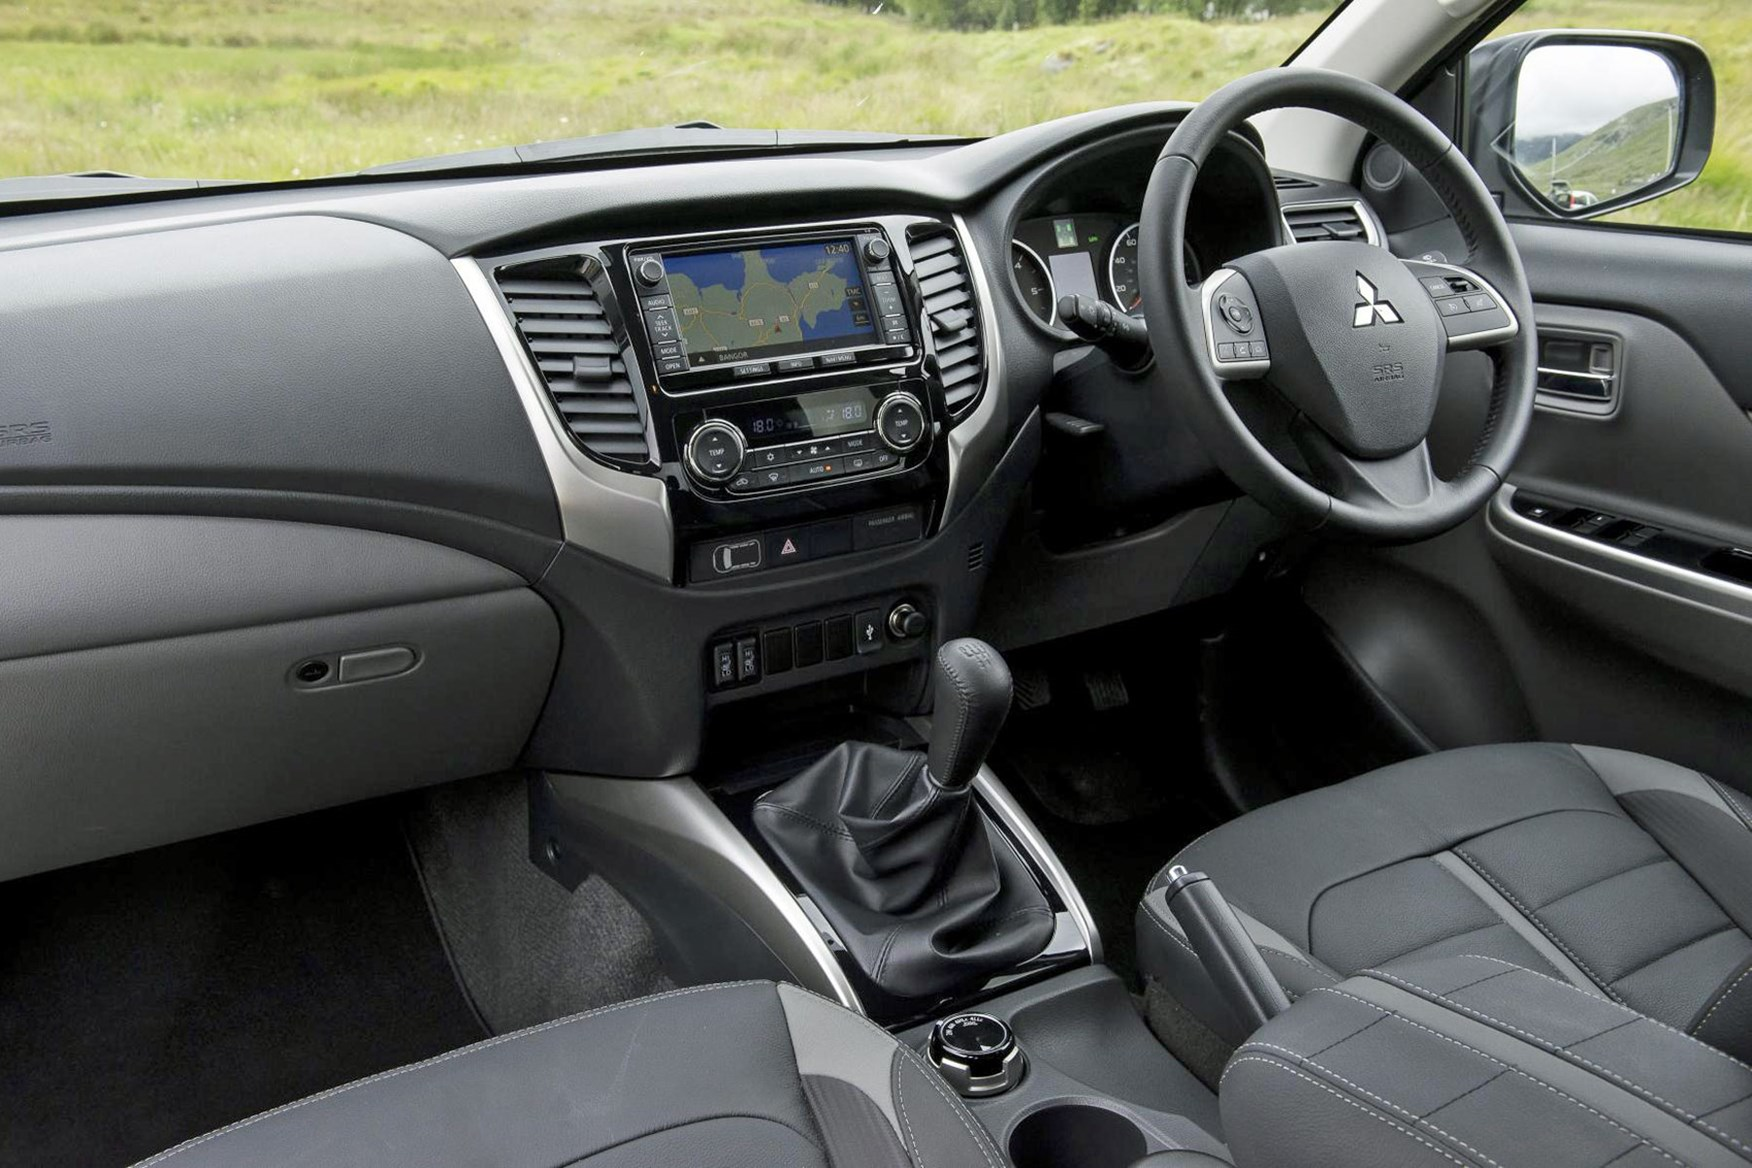 Mitsubishi L200, cab interior, lifestyle with touchscreen